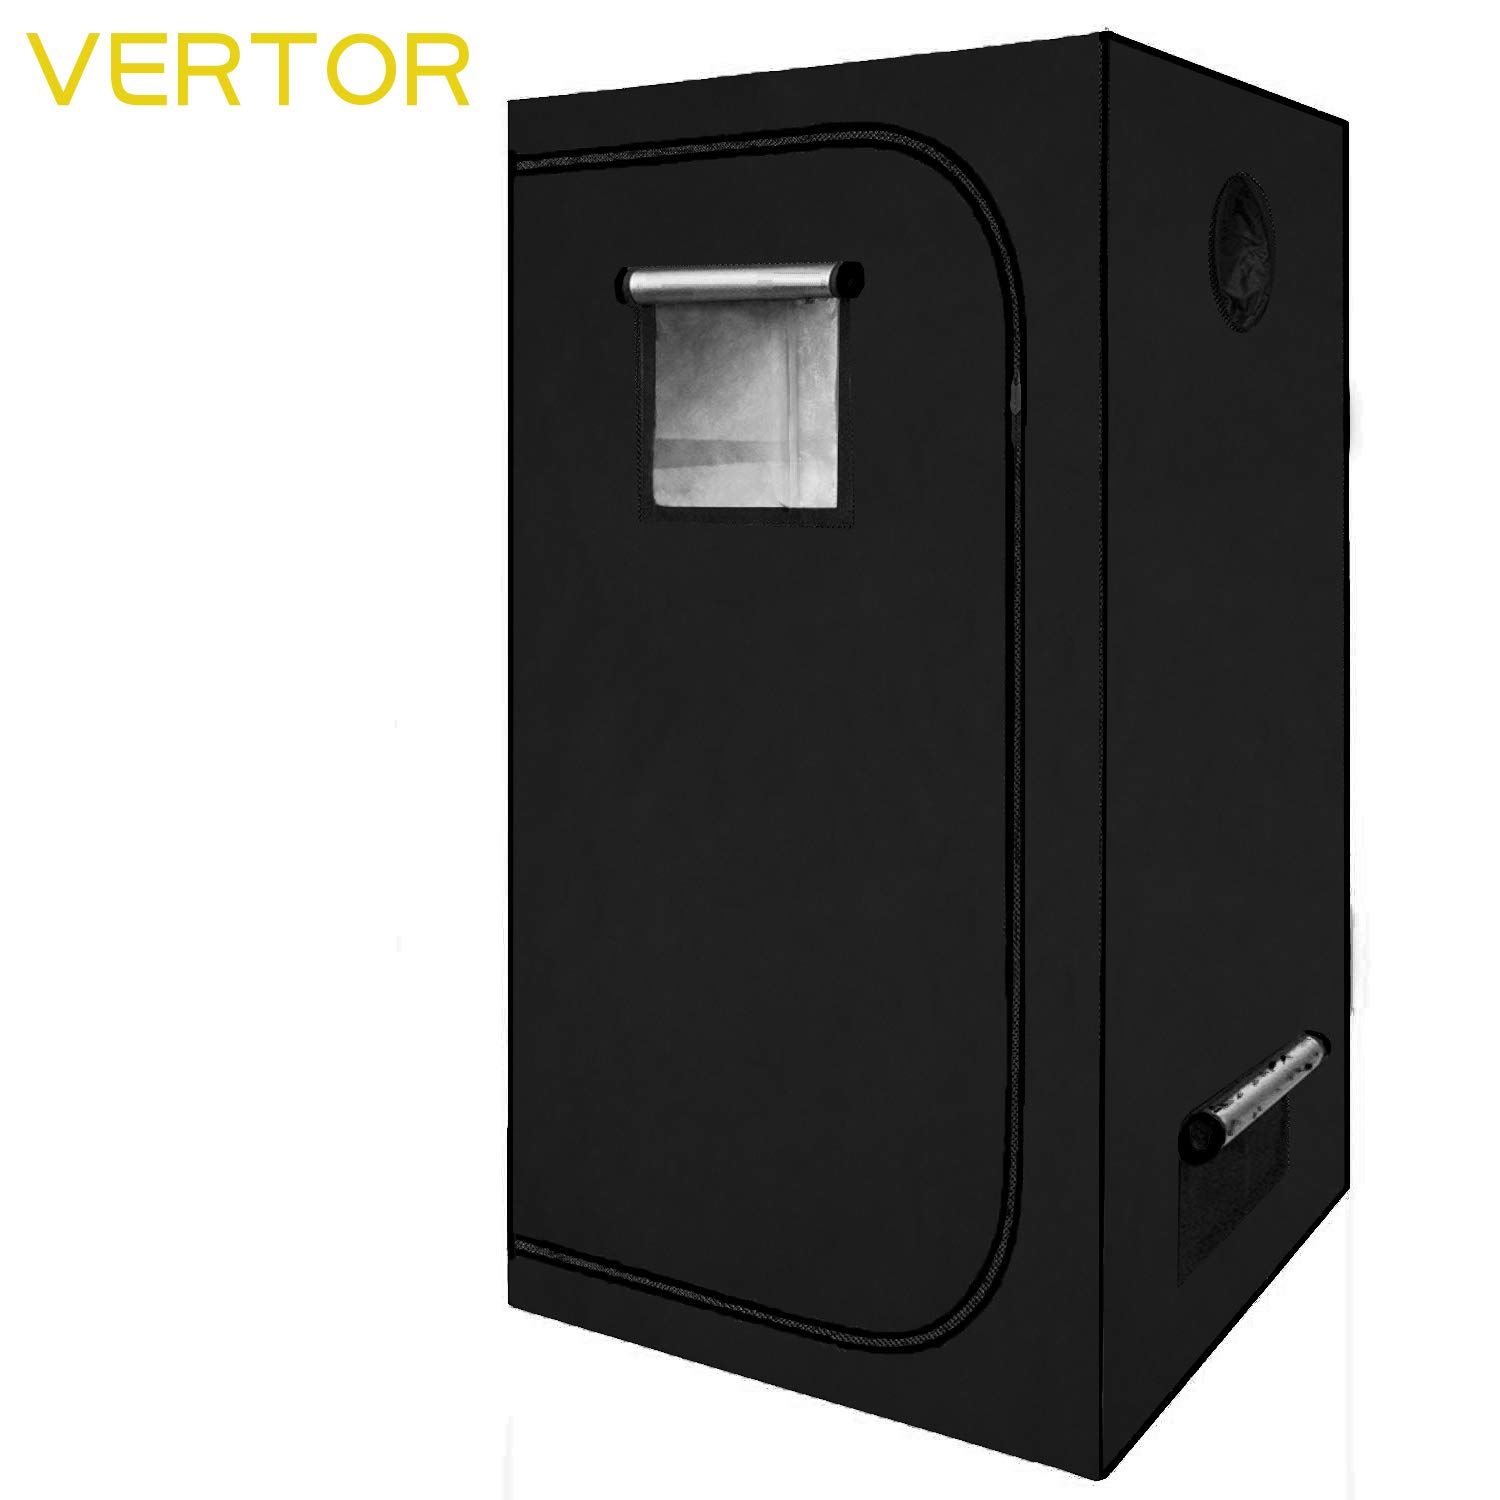 VERTOR 32 x32 x63 Reflective Mylar Hydroponic Grow Tent with Observation Window and Waterproof Floor Tray for Indoor Plant Growing 2.5×2.5 for 3 Plants